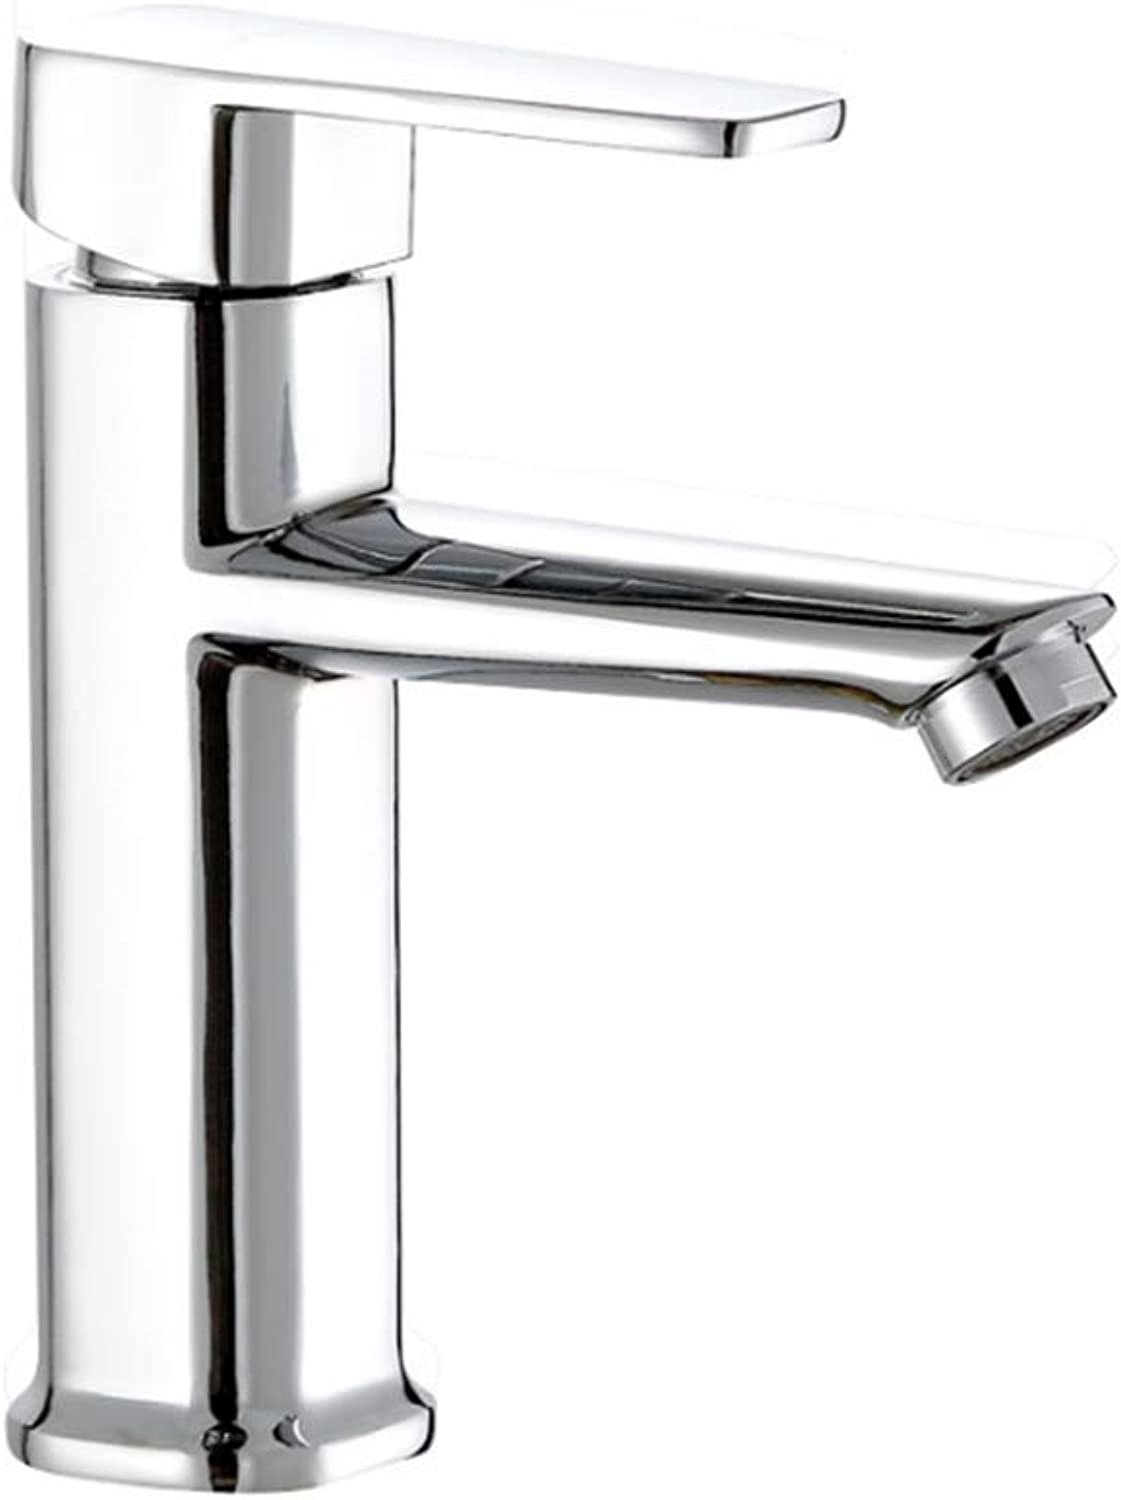 Kitchen Taps Faucet Modern Kitchen Sink Taps Stainless Steelcopper Single Hole Cold and Hot Faucet Toilet Basin Washbasin Table Basin Cold and Hot Water Faucet